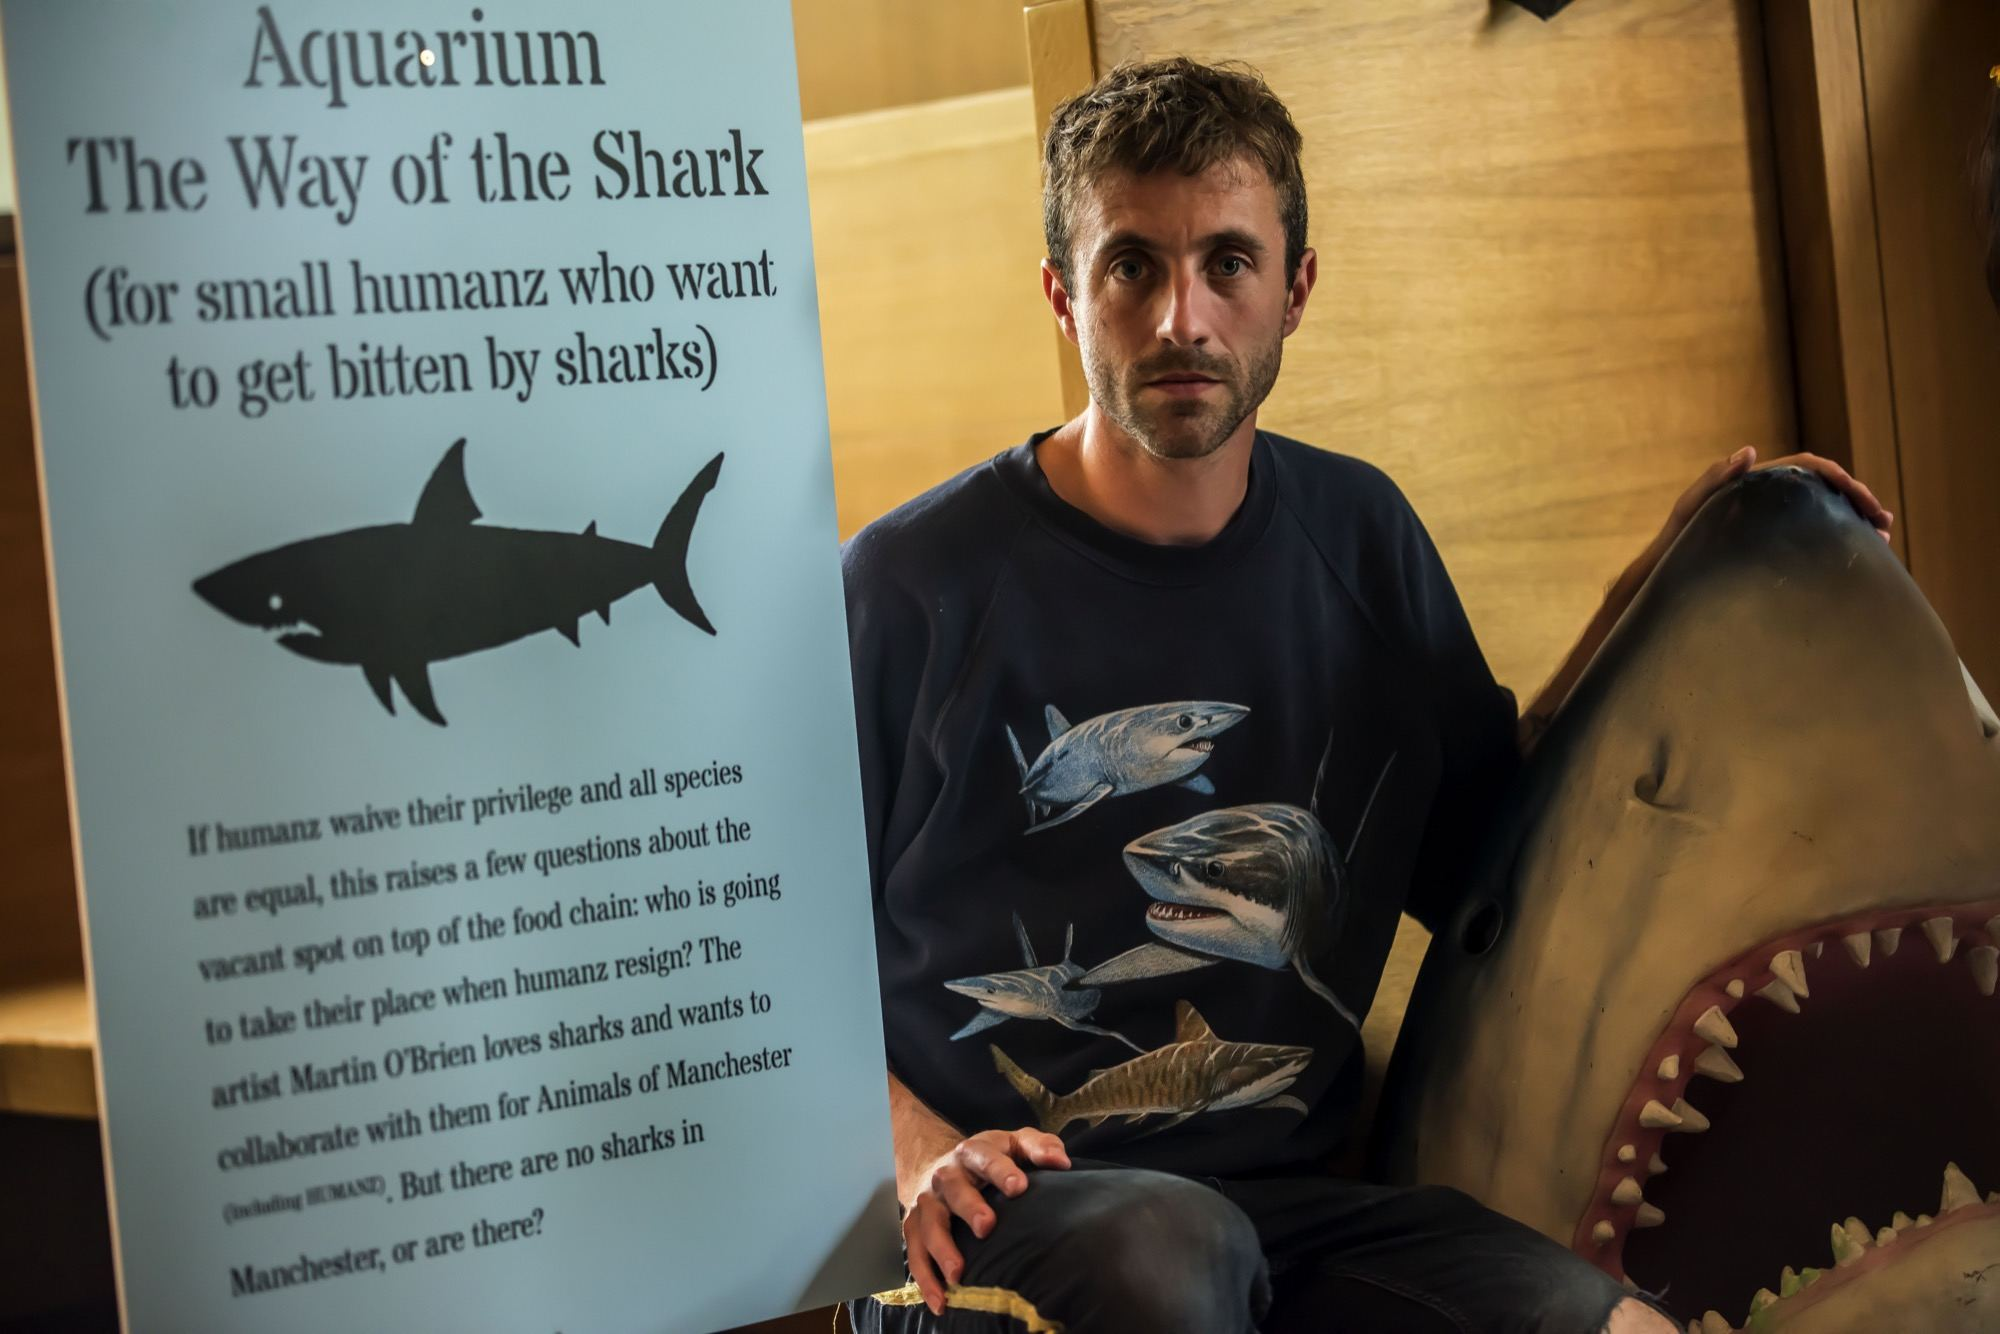 artist martin o brien next to a poster with a shark